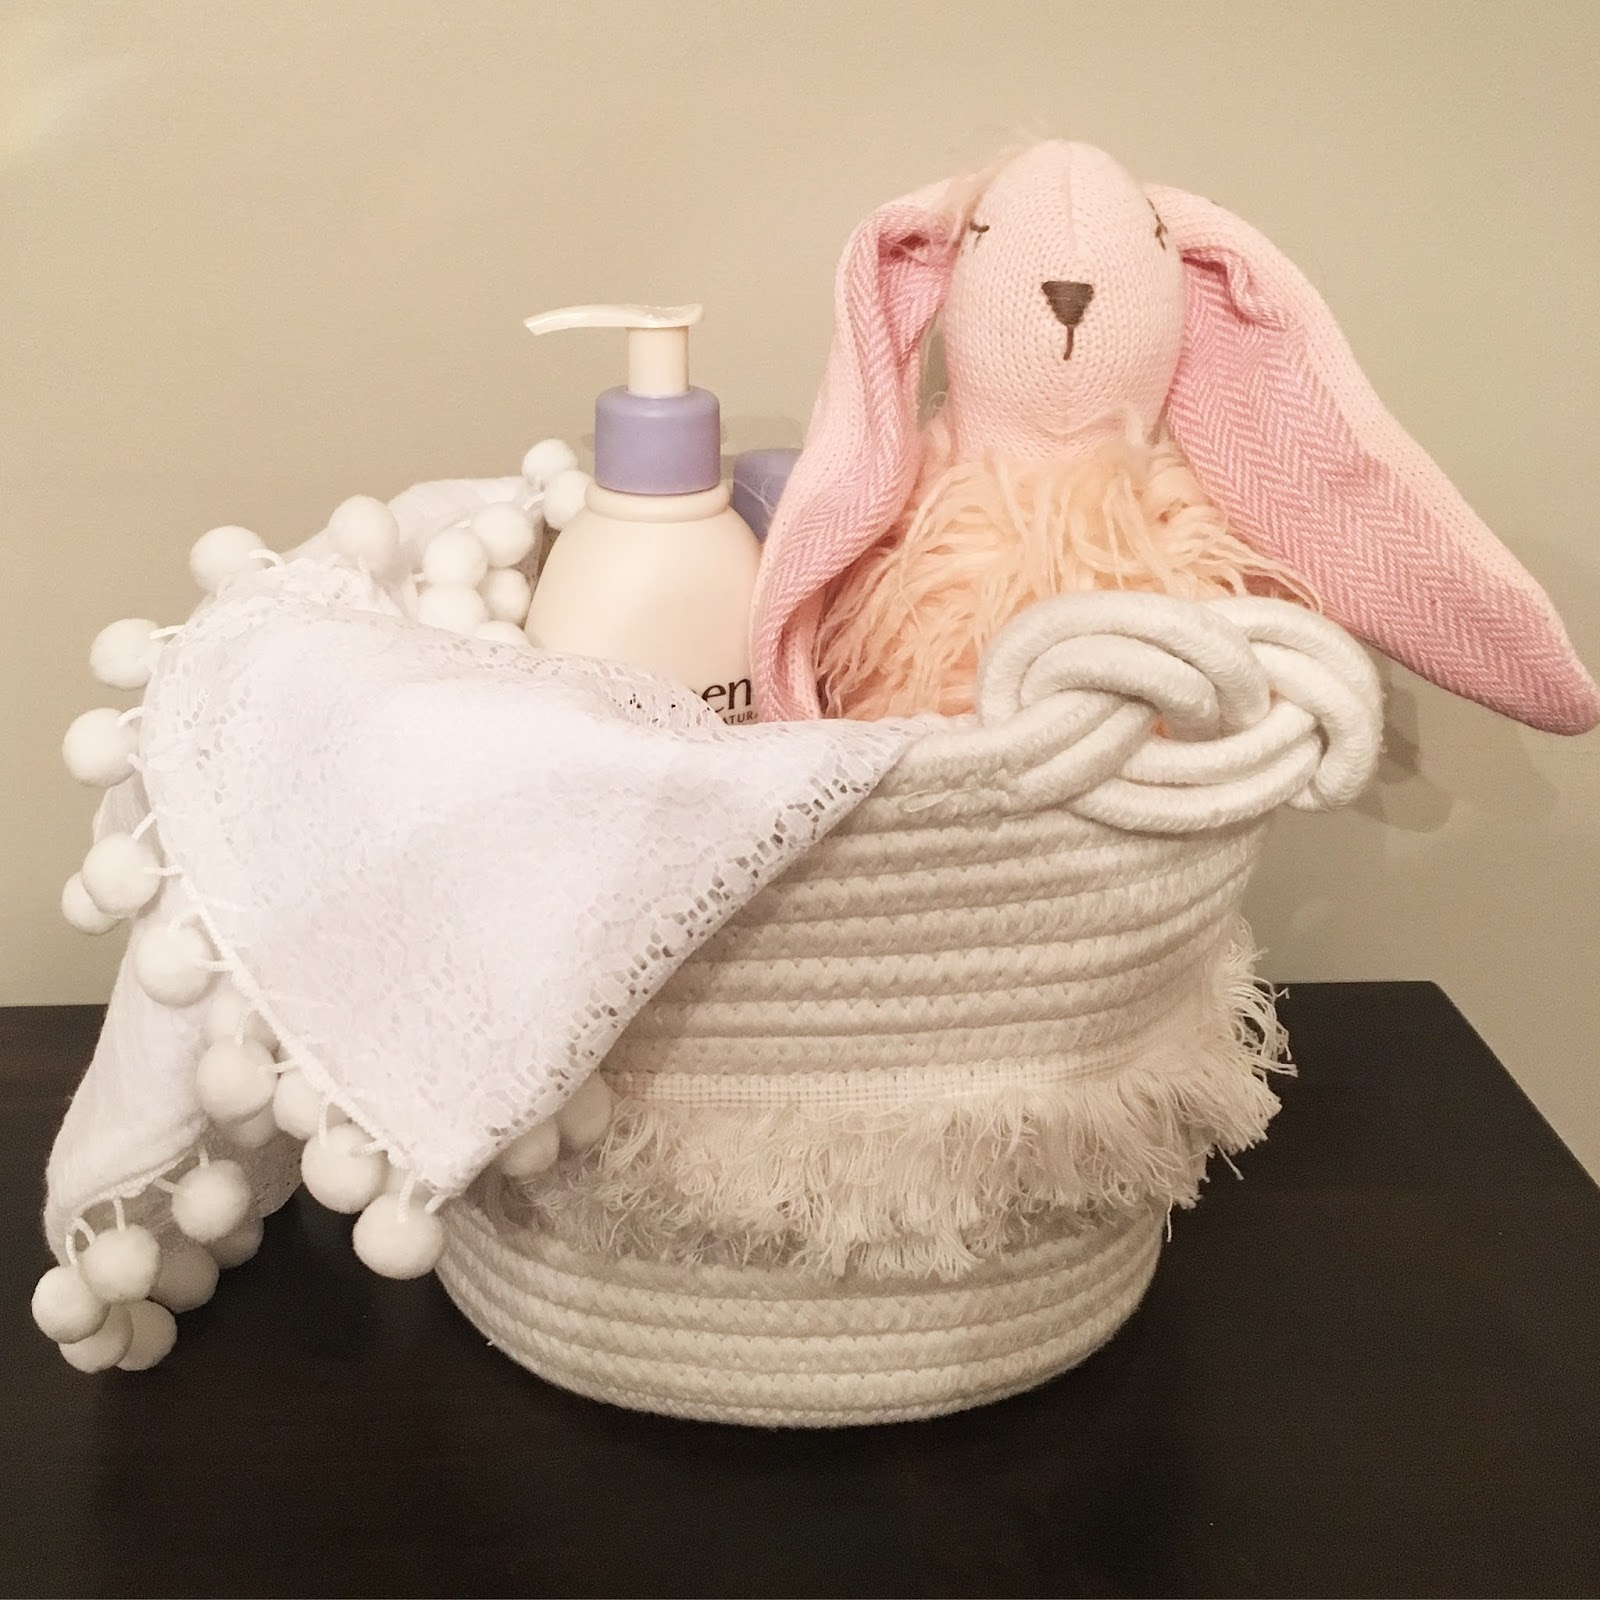 Hello happy hadley babys first easter basket the basket below i found at home goods and added a new baby blanket from lila and rose shop a cute stuffed animal and some baby lotion could complete this negle Images